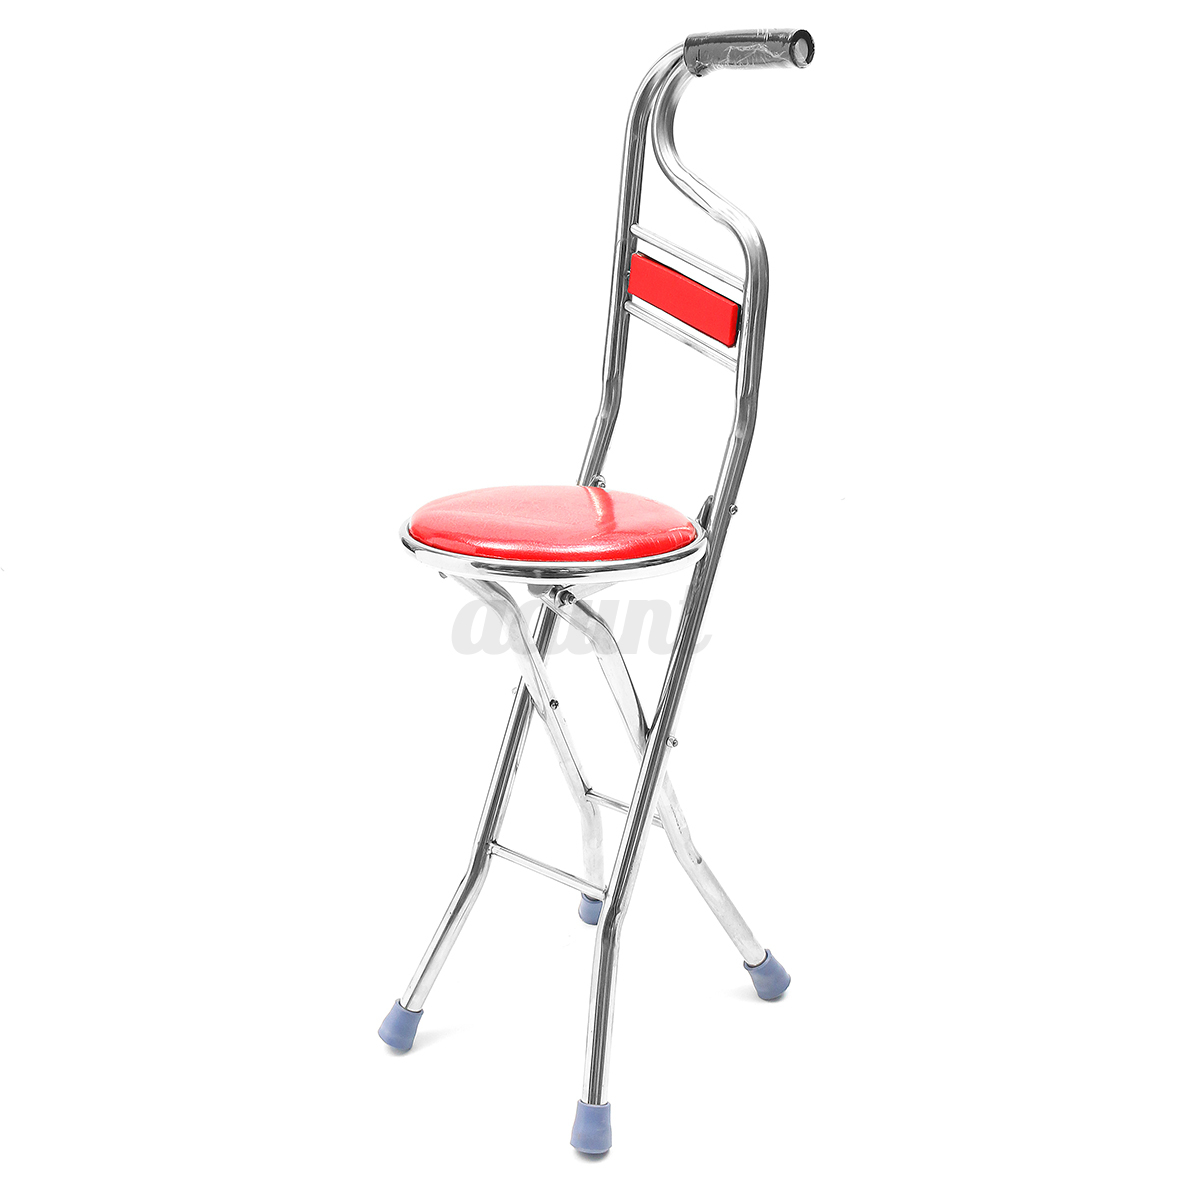 Stainless Steel Portable Folding Walking Stick Chair Seat Stool ...